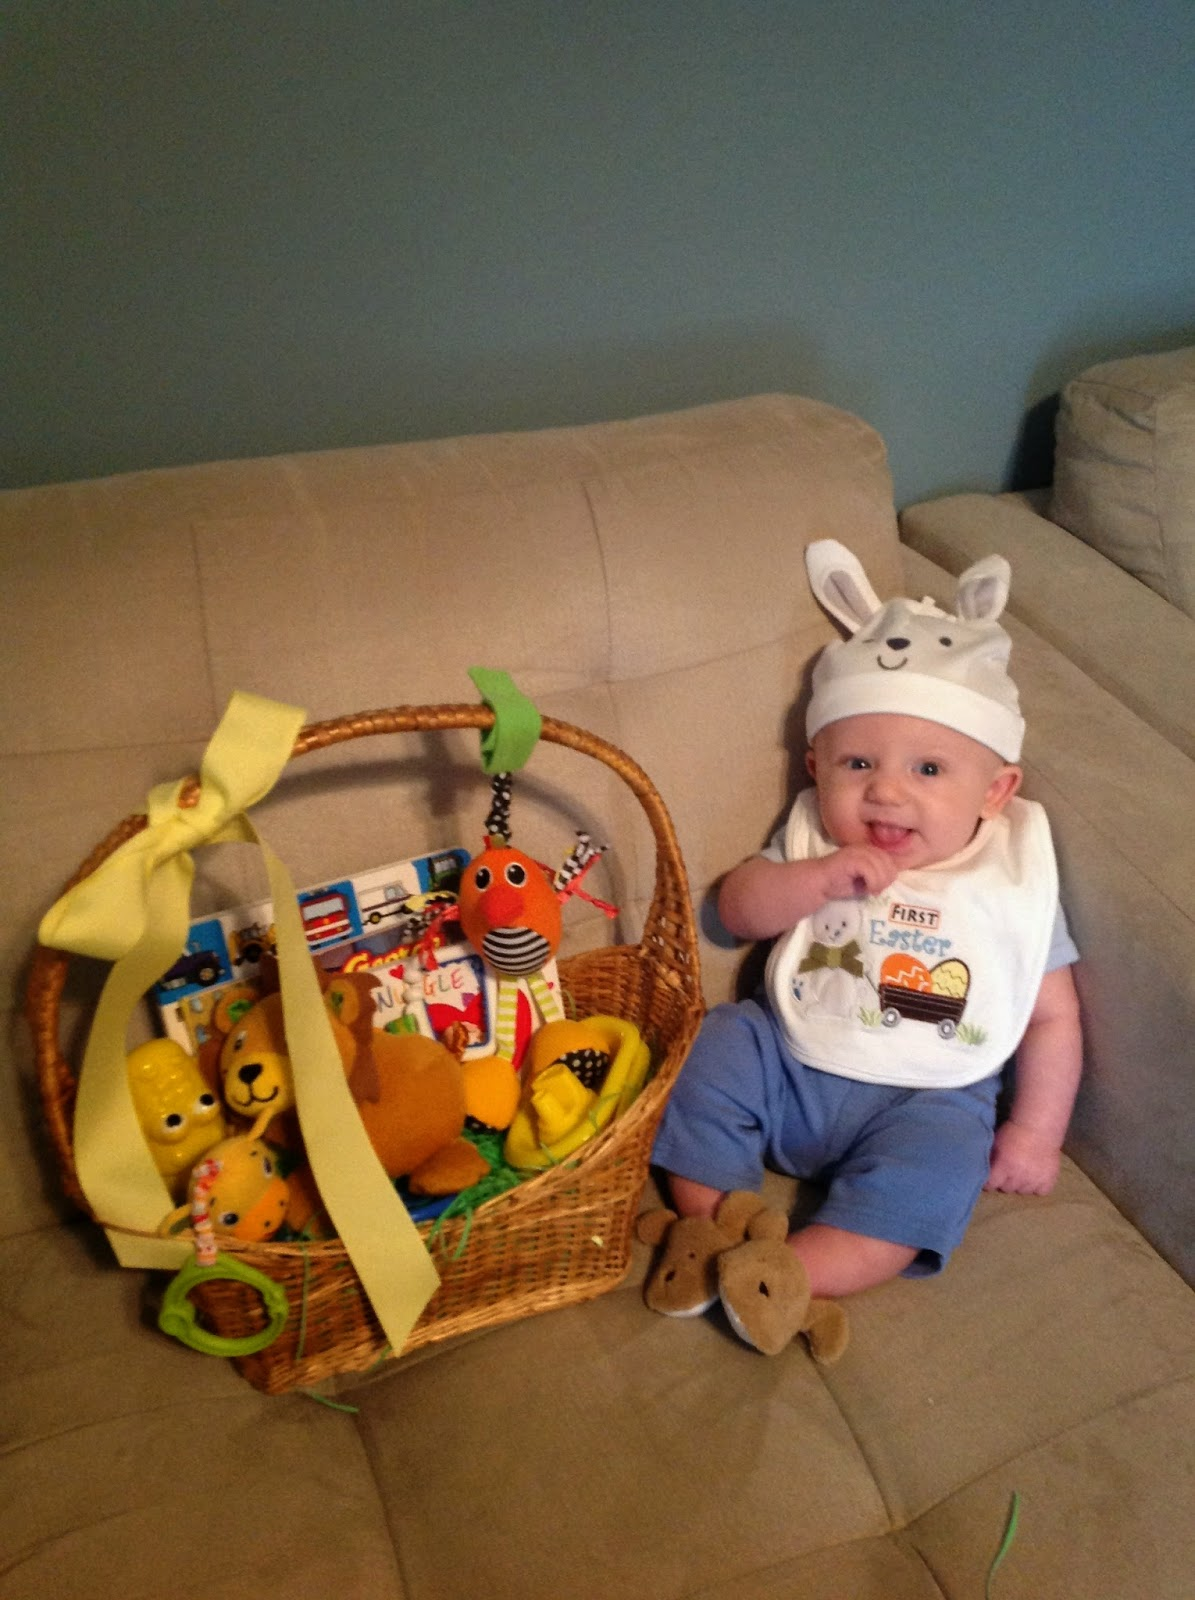 Easter Basket Ideas for Babies and Toddlers (95 Ideas and Free Printable List)